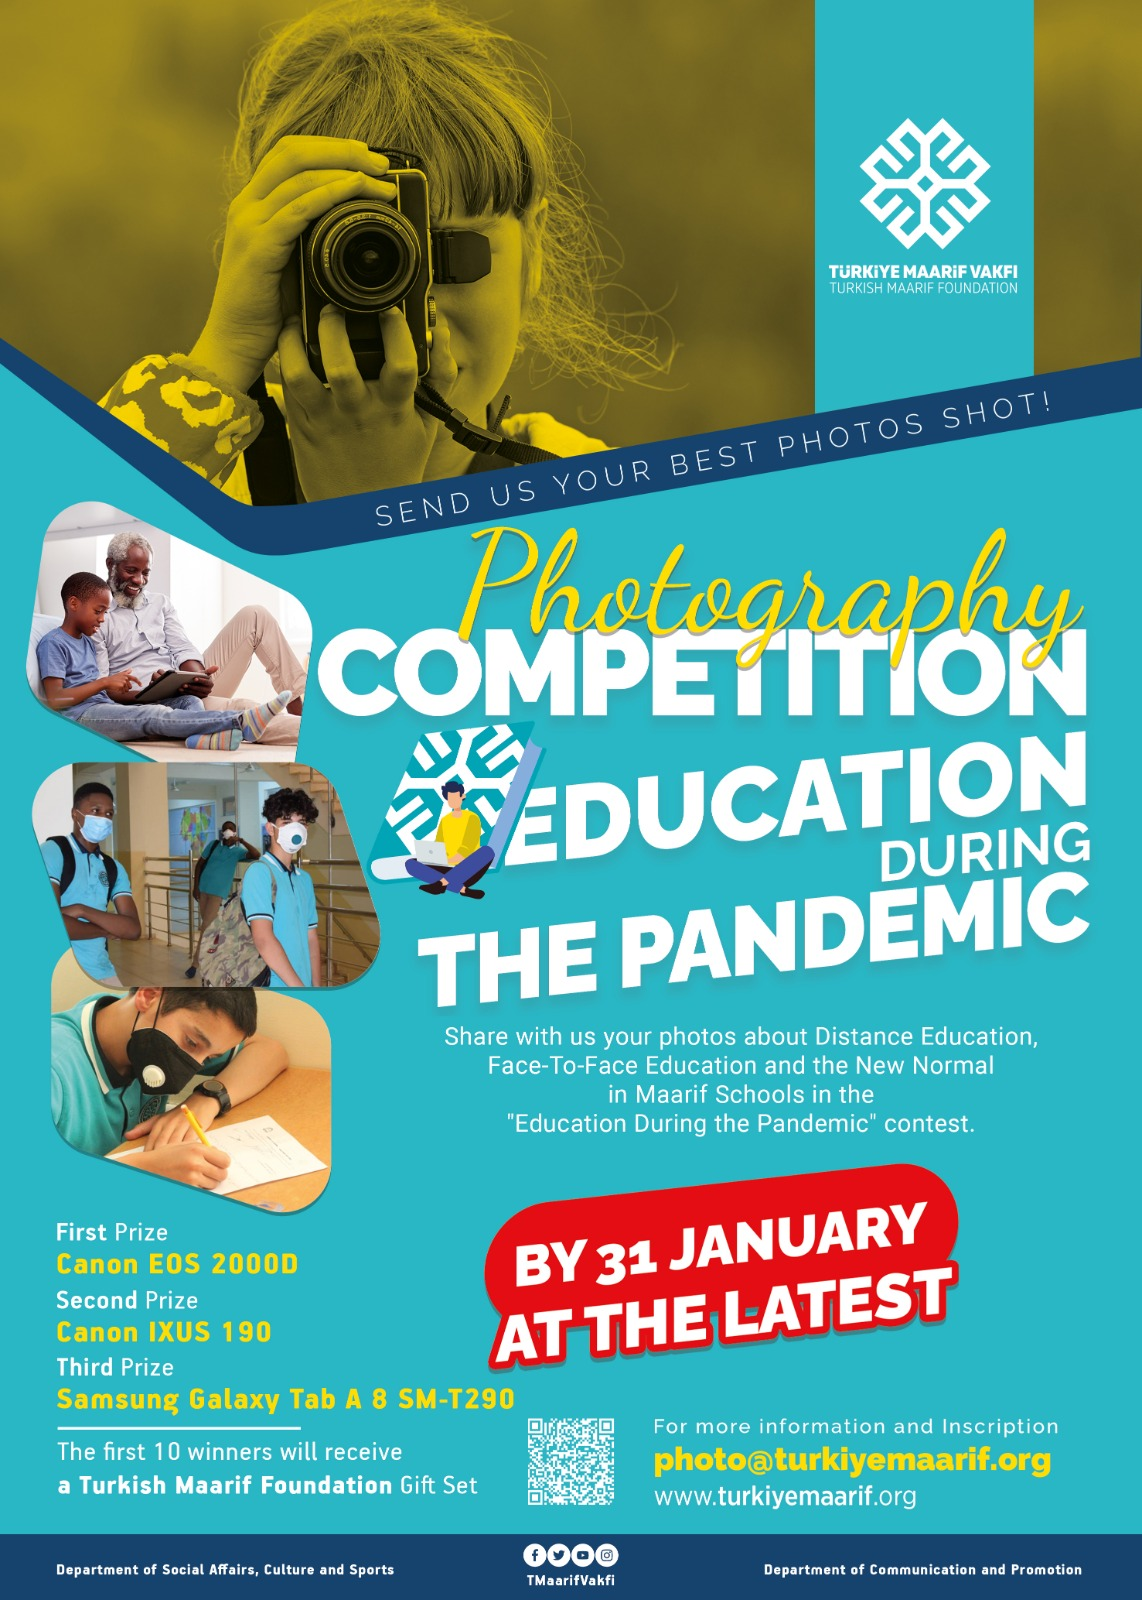 EDUCATION DURING THE PANDEMIC PHOTOGRAPHY COMPETITION